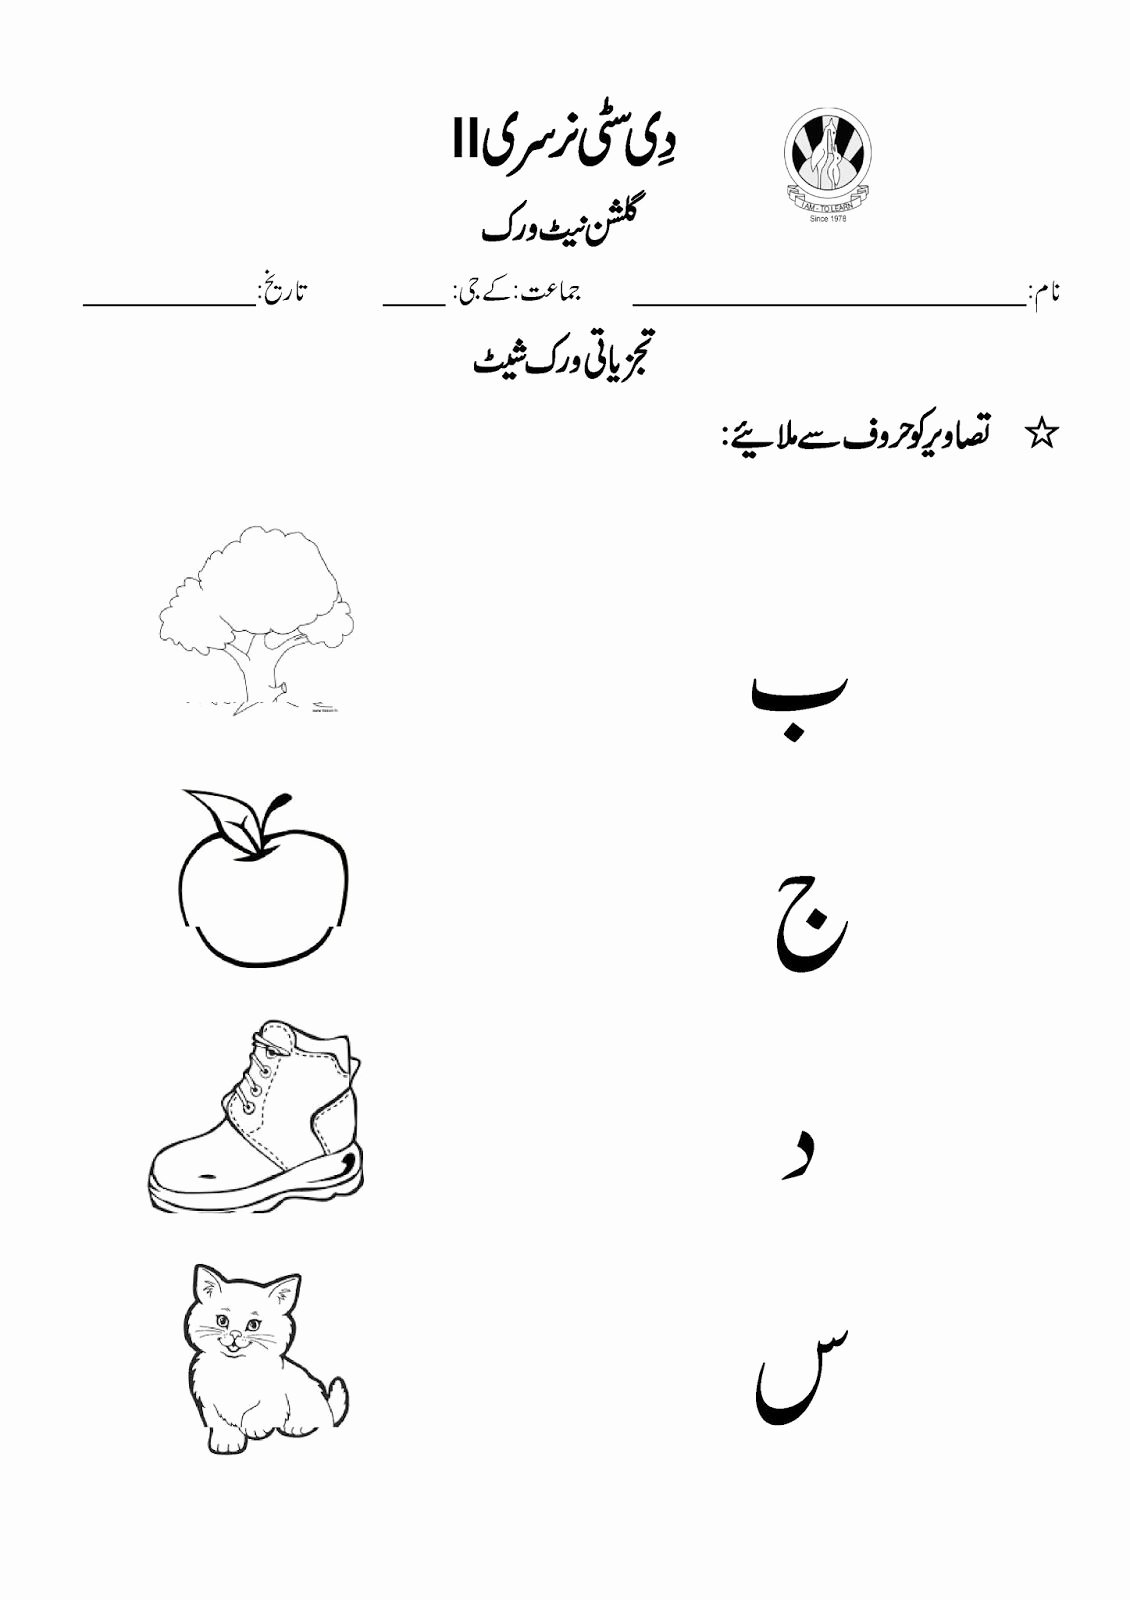 Download Urdu Worksheets for Preschoolers New Sr Gulshan the City Nursery Ii Urdu First Term